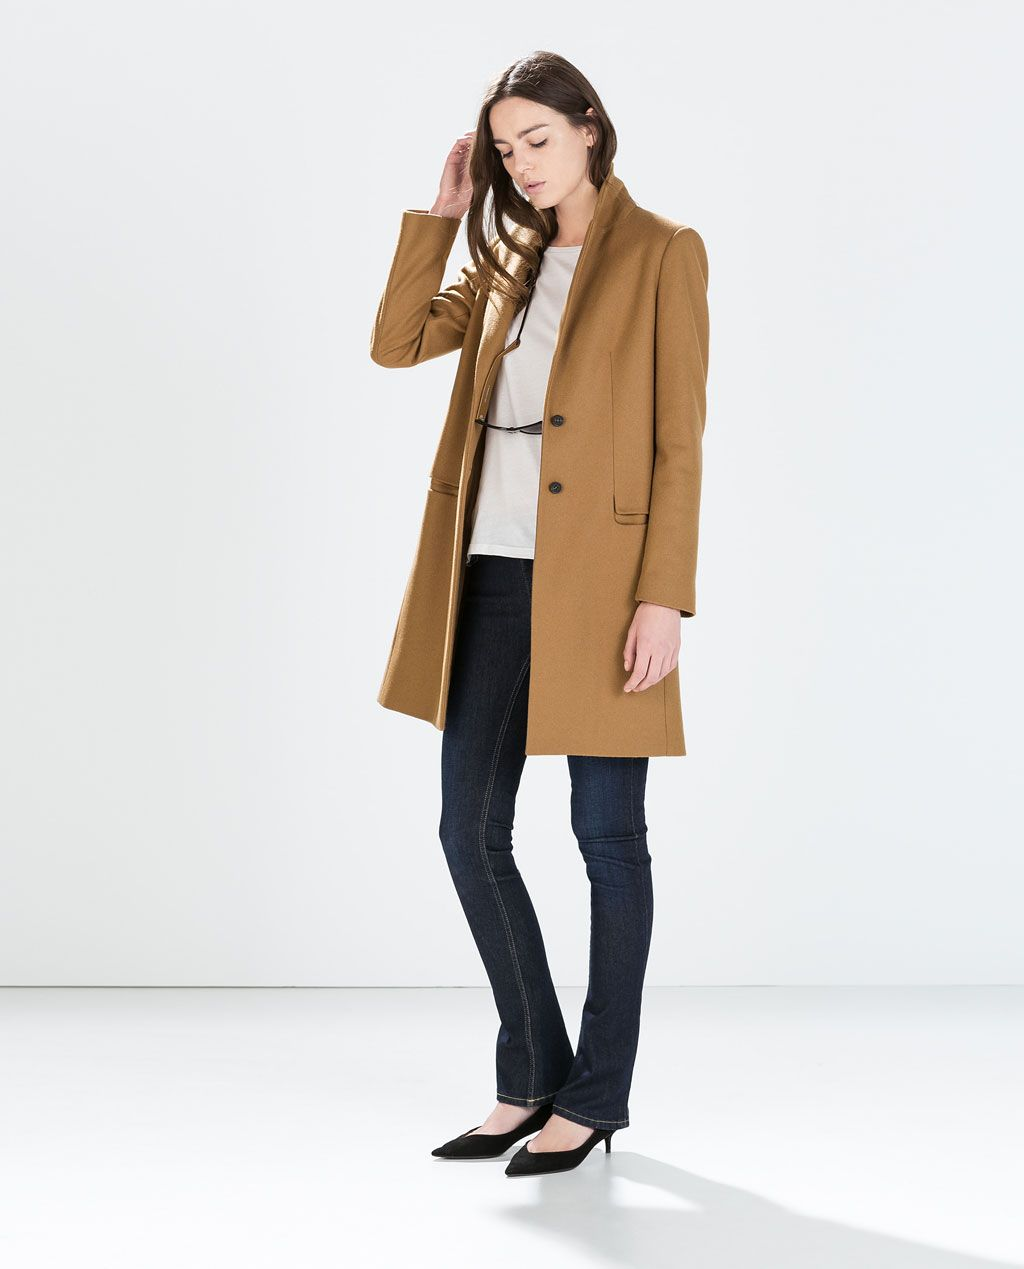 Wool Camel Coat Ref 8143 317 169 00 Usd Fashion Fall Winter